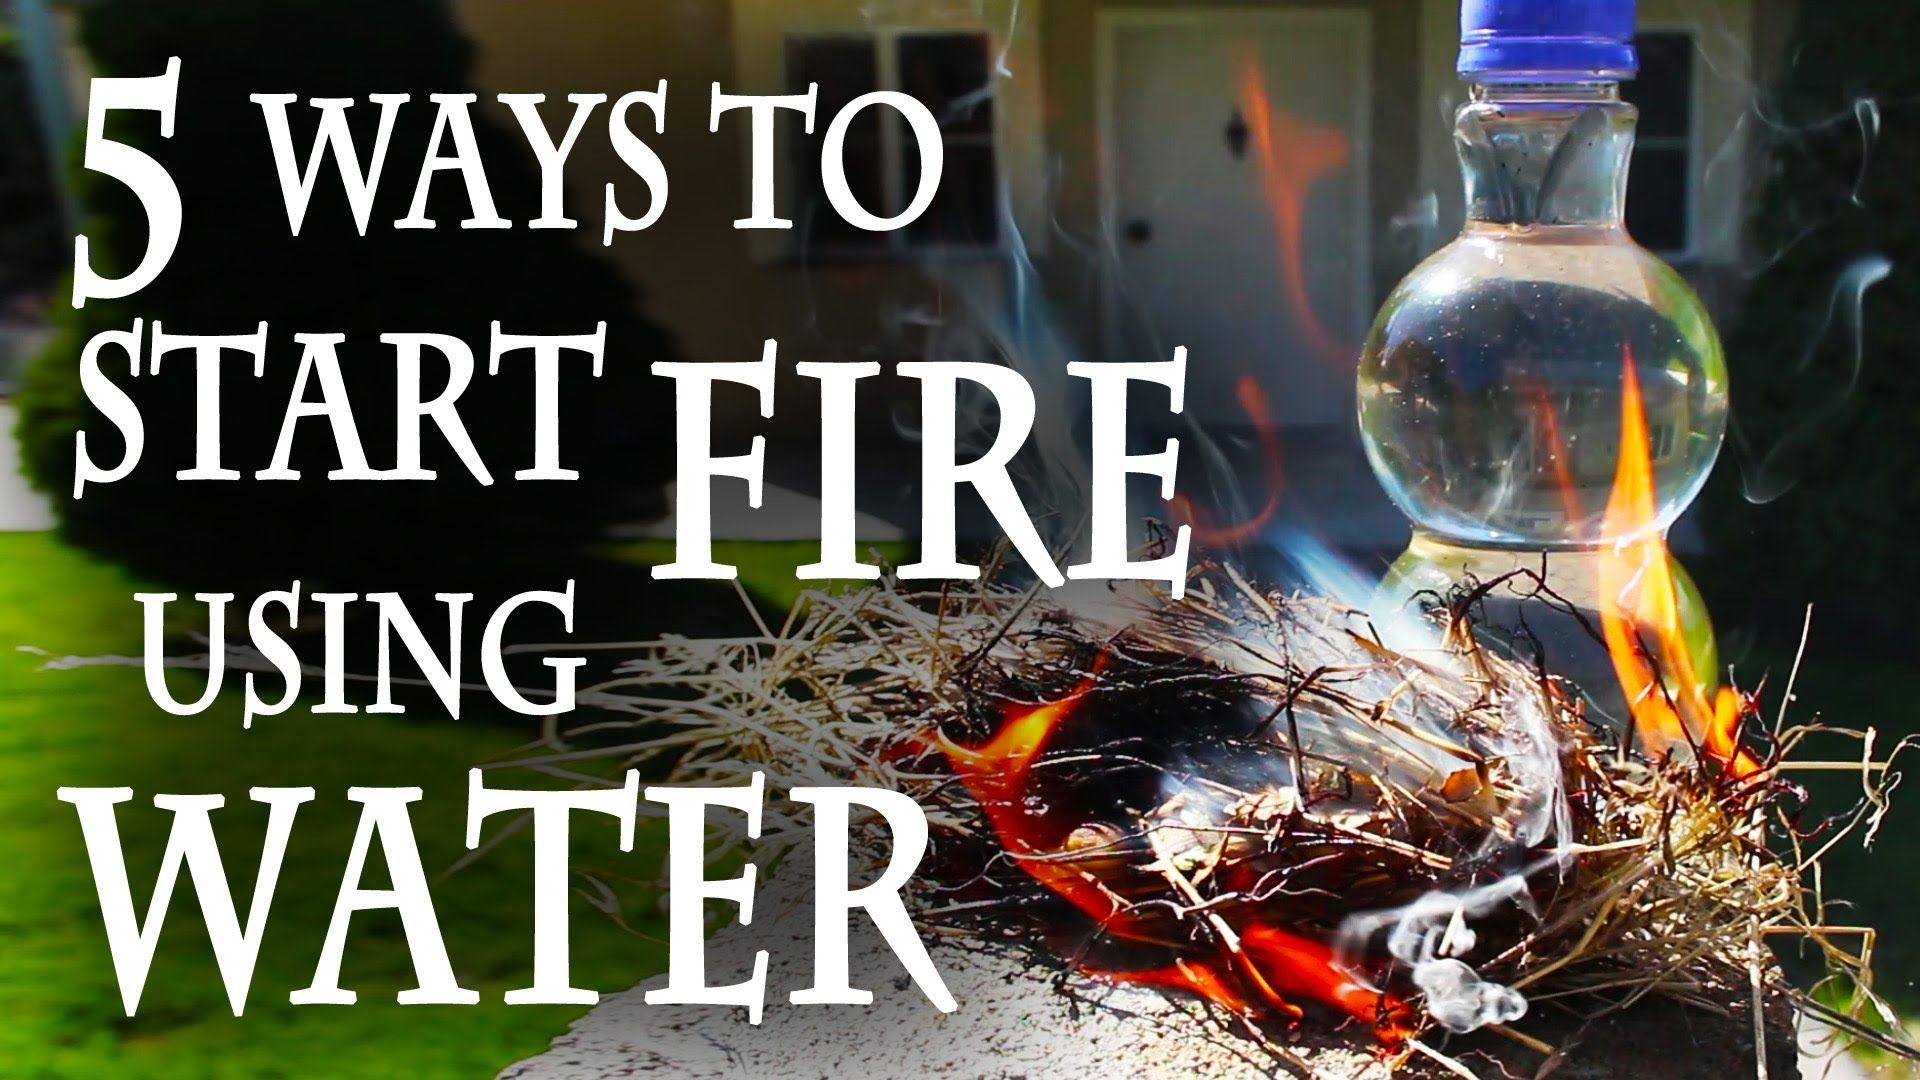 5 Ways To Start A Fire Using Water Fire And Water Mortal Enemies